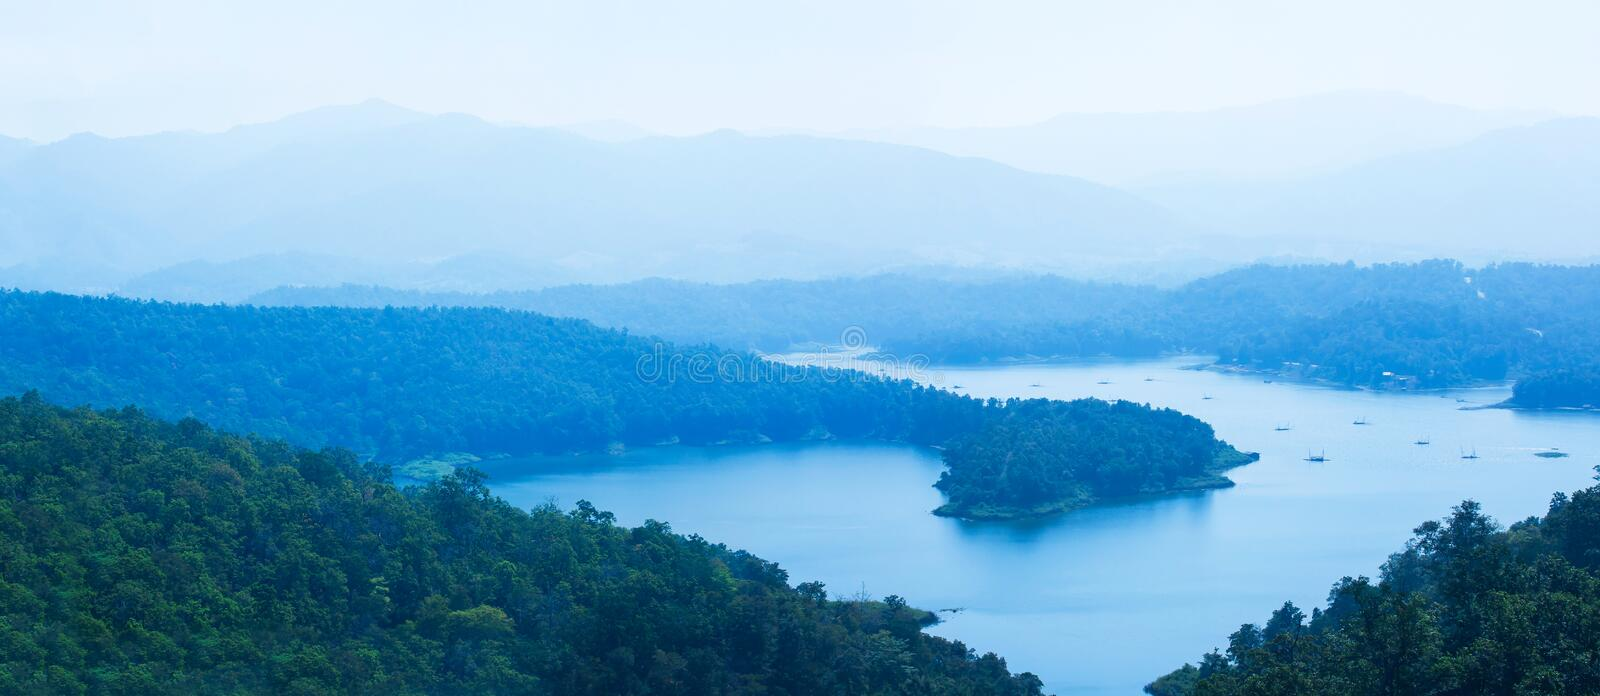 Aerial view panorama of the blue lake in a mountain range stock photography